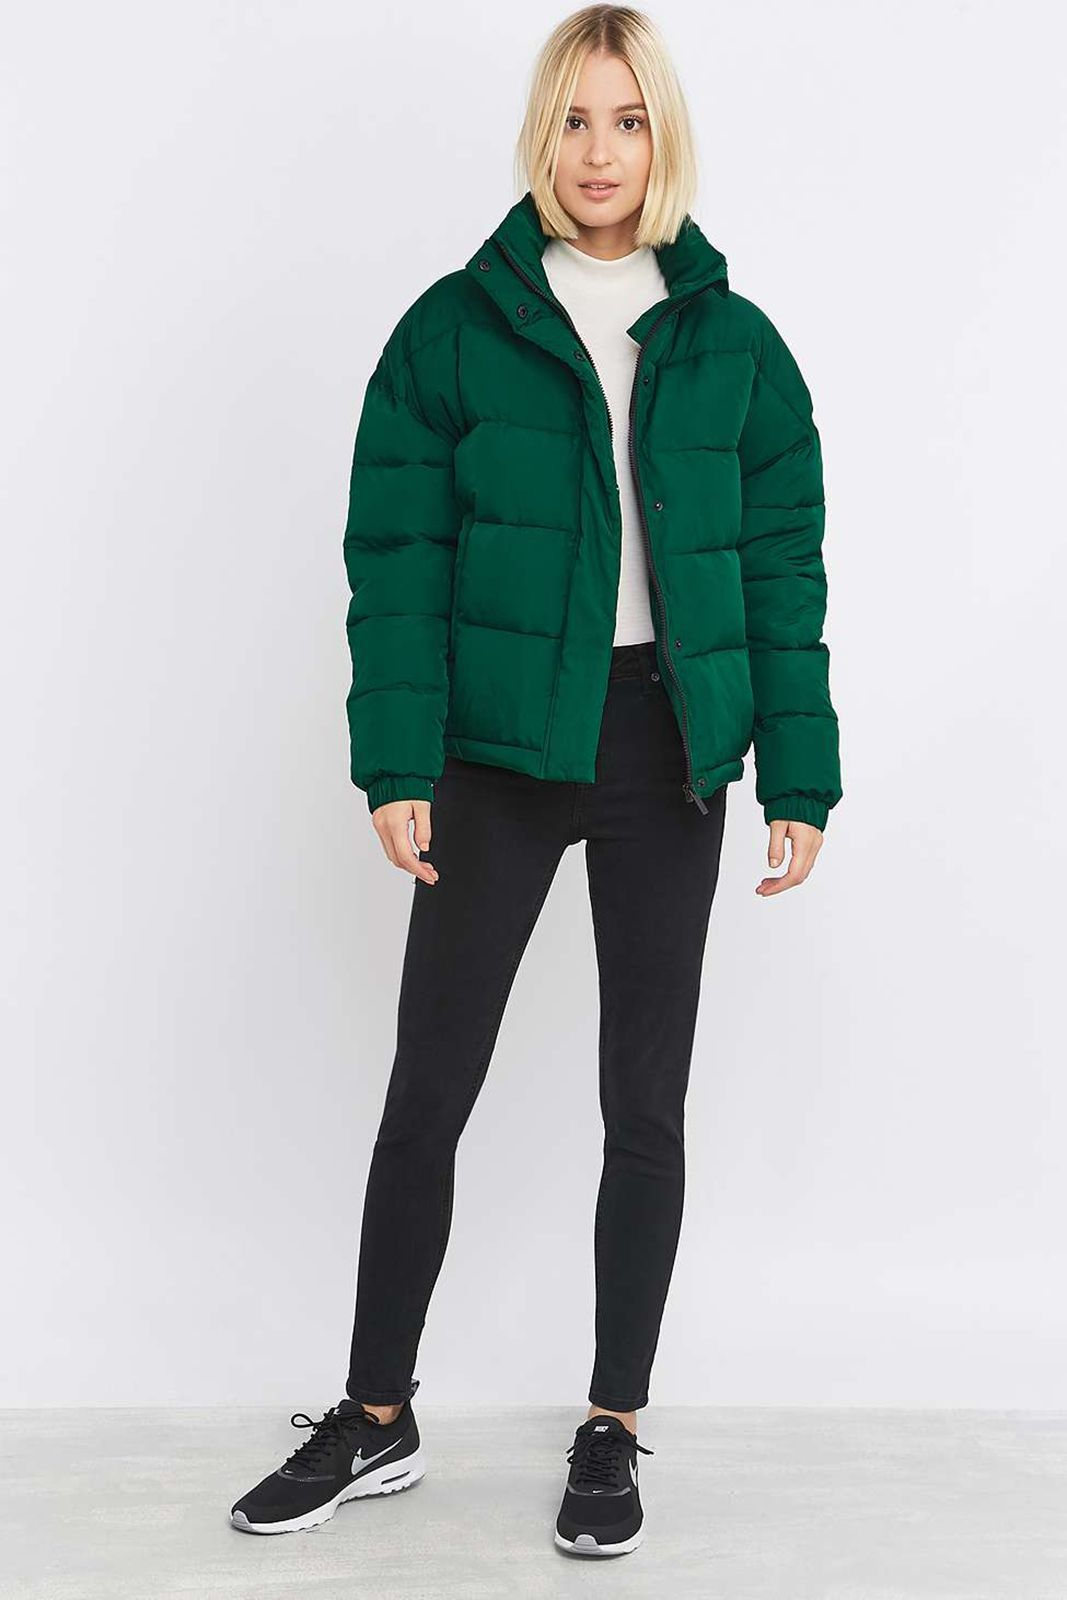 Puffer Jackets To Buy In August. Seriously. | Puffer jackets ...